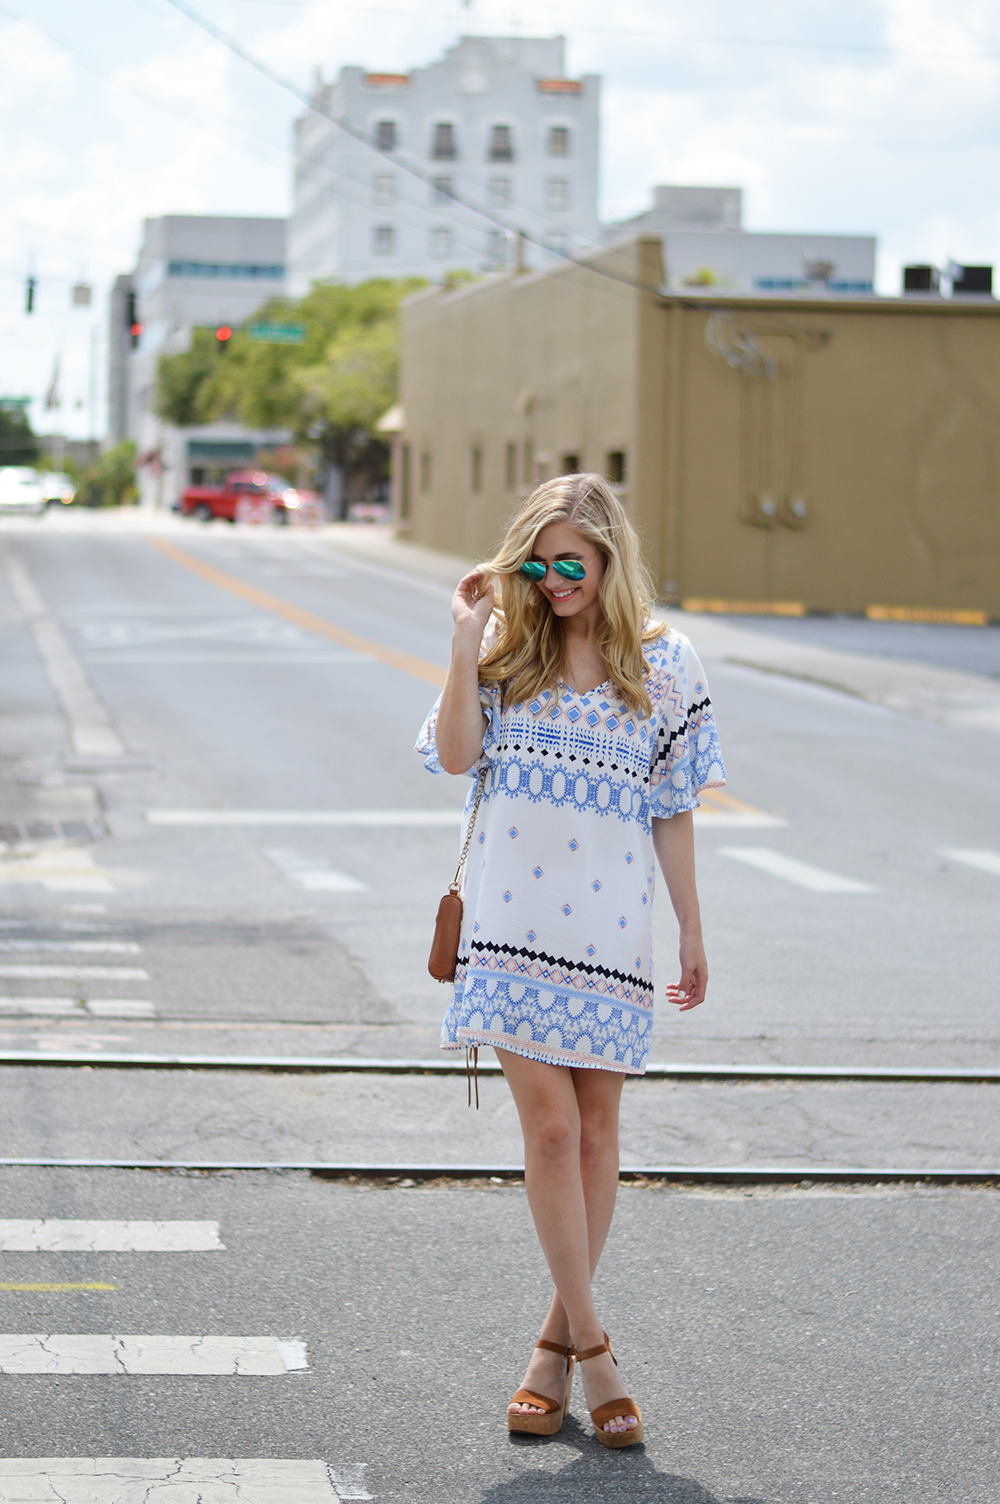 styelled blog, glam, glam clothing, summer style, summer wear, sundress, sun dress, white dress, summer print, rebecca minkoff, dolce vita, bell sleeve, fashion blogger, fblogger, style blogger, 02